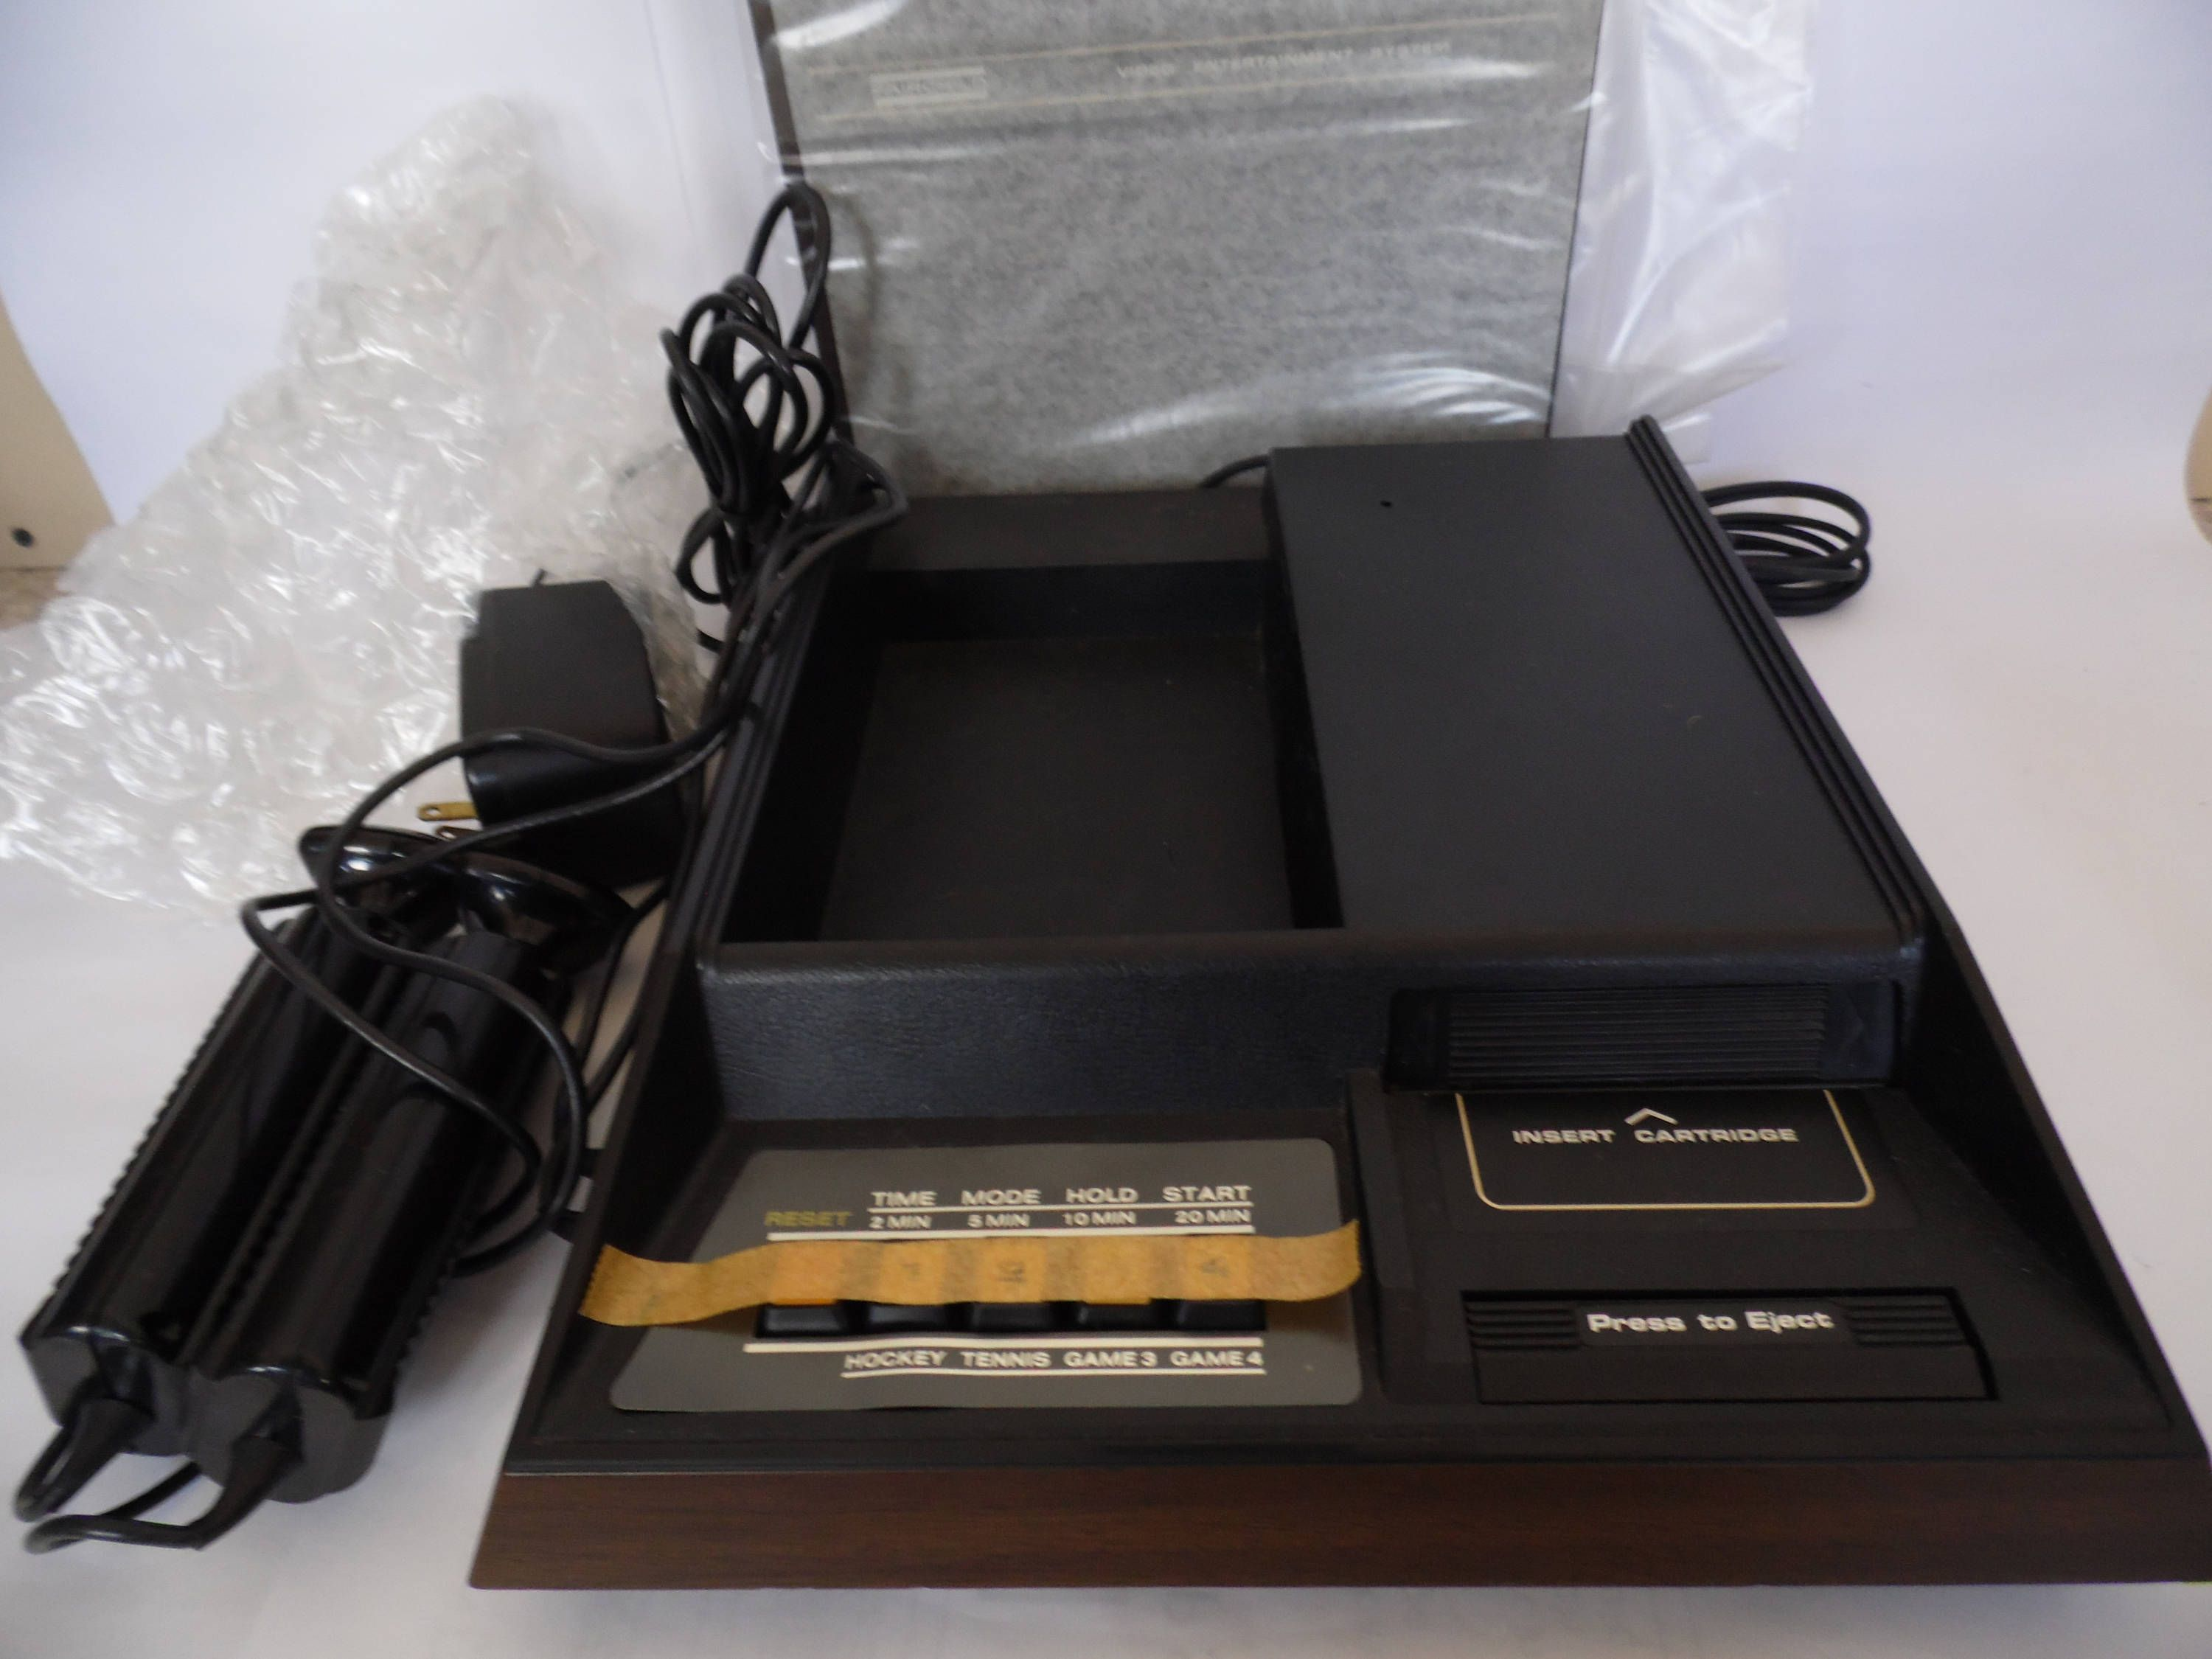 Fairchild Video Entertainment System Channel F video game